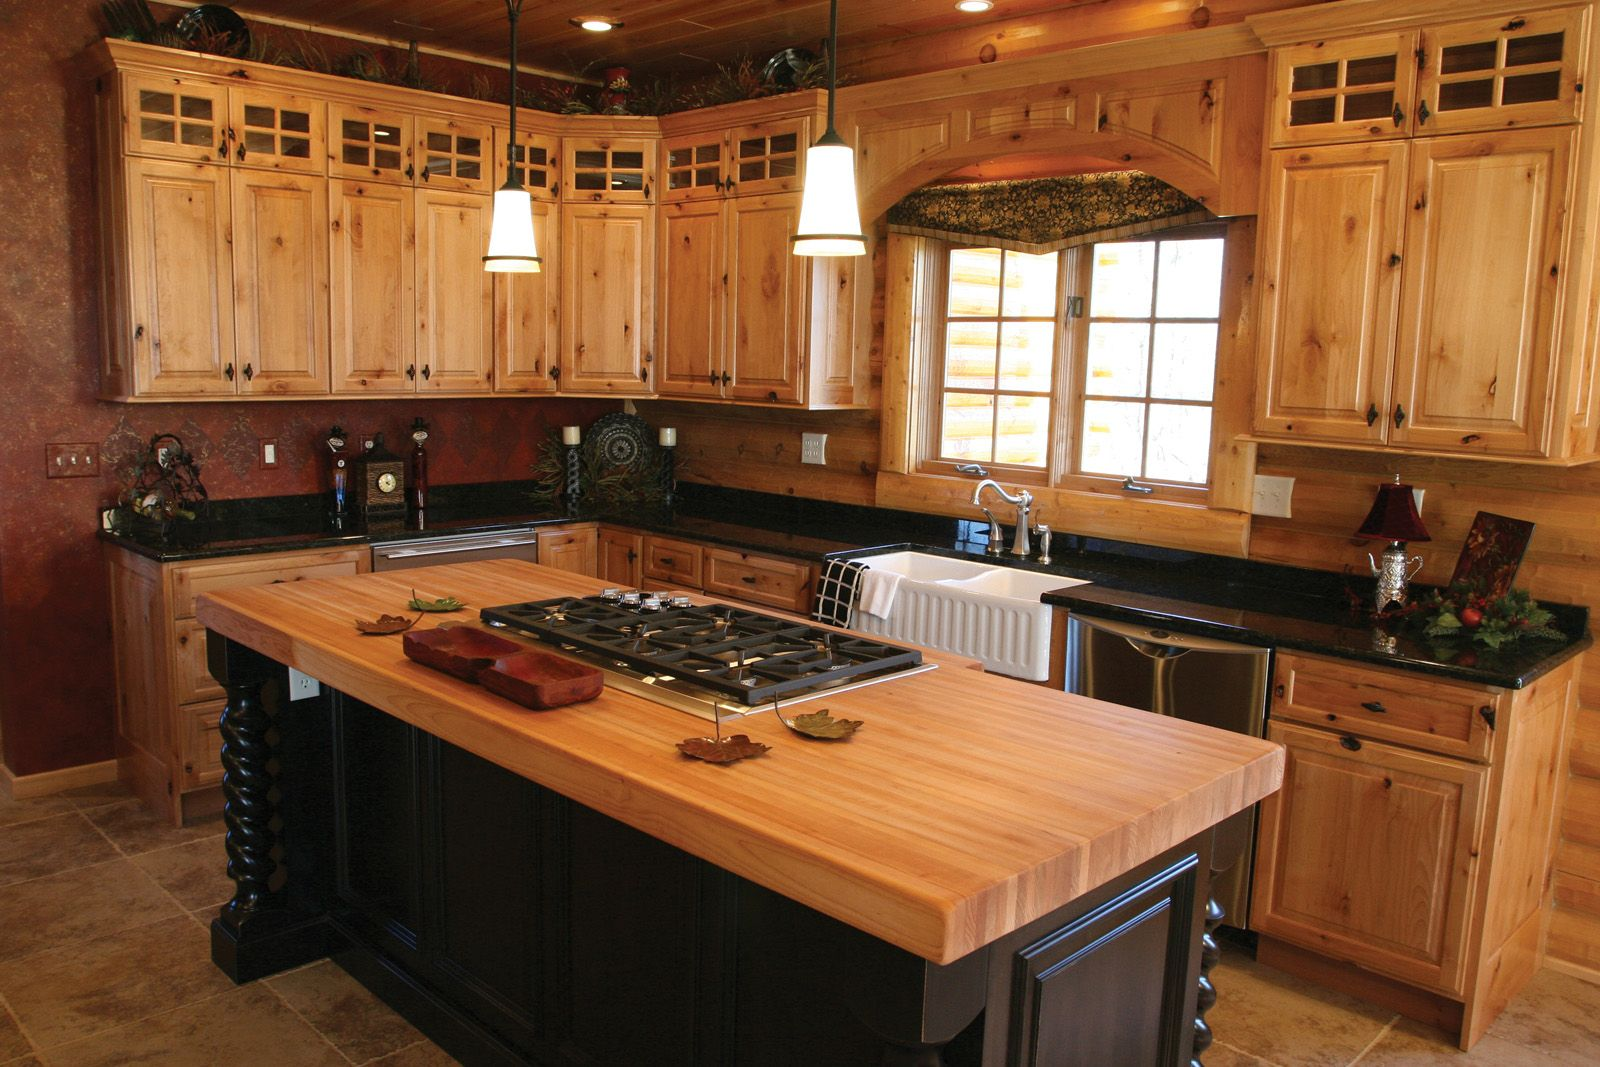 Natural Knotty Alder Wood Kitchen Cabinets Custom Wood Cabinetry In Oak Maple Cherry Log Home Kitchens Pine Kitchen Cabinets Hickory Kitchen Cabinets